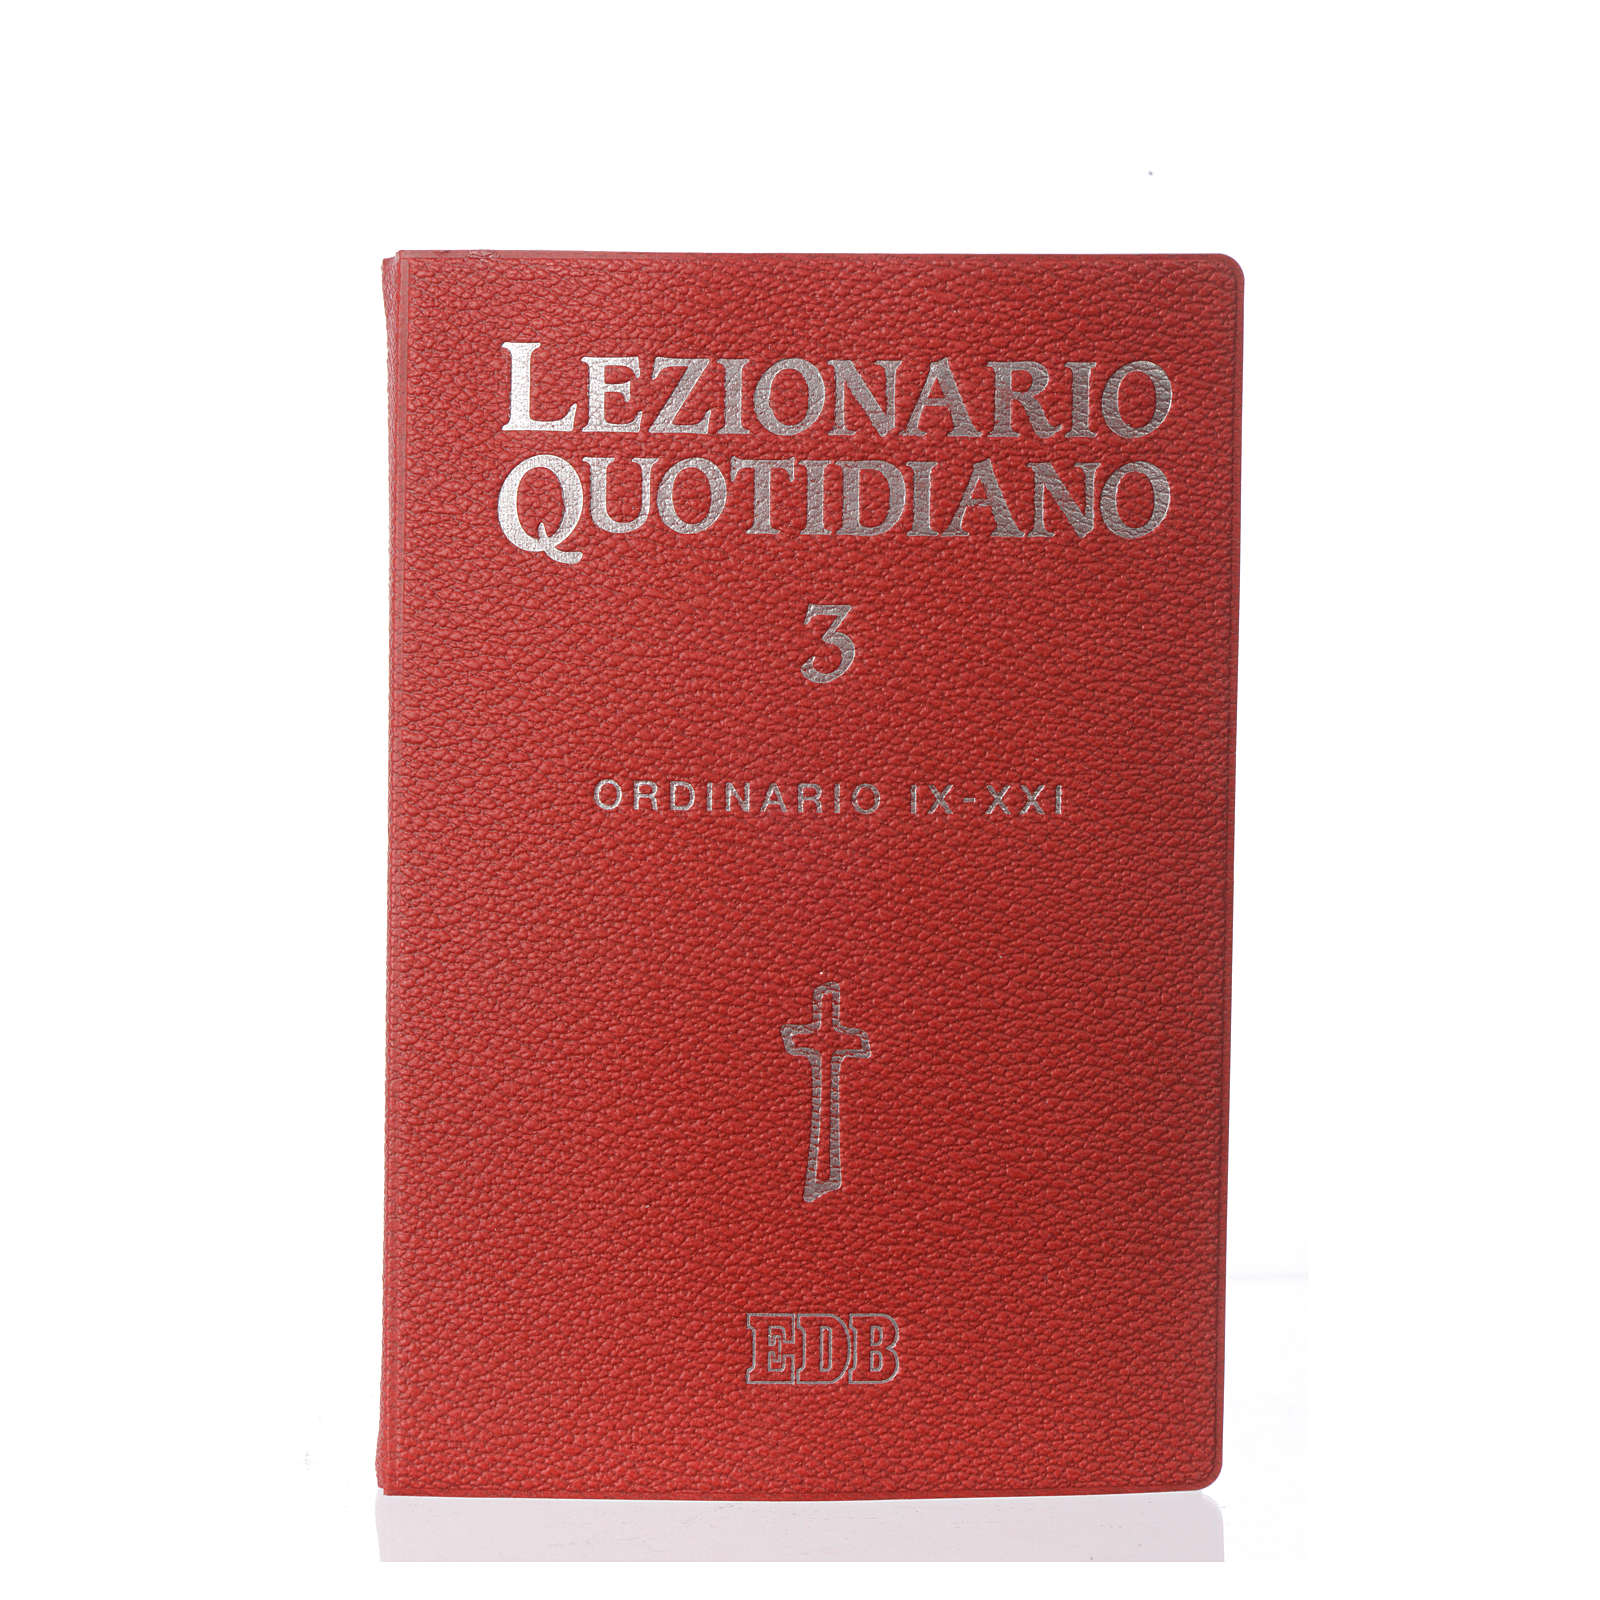 Lezionario quotidiano 3 4